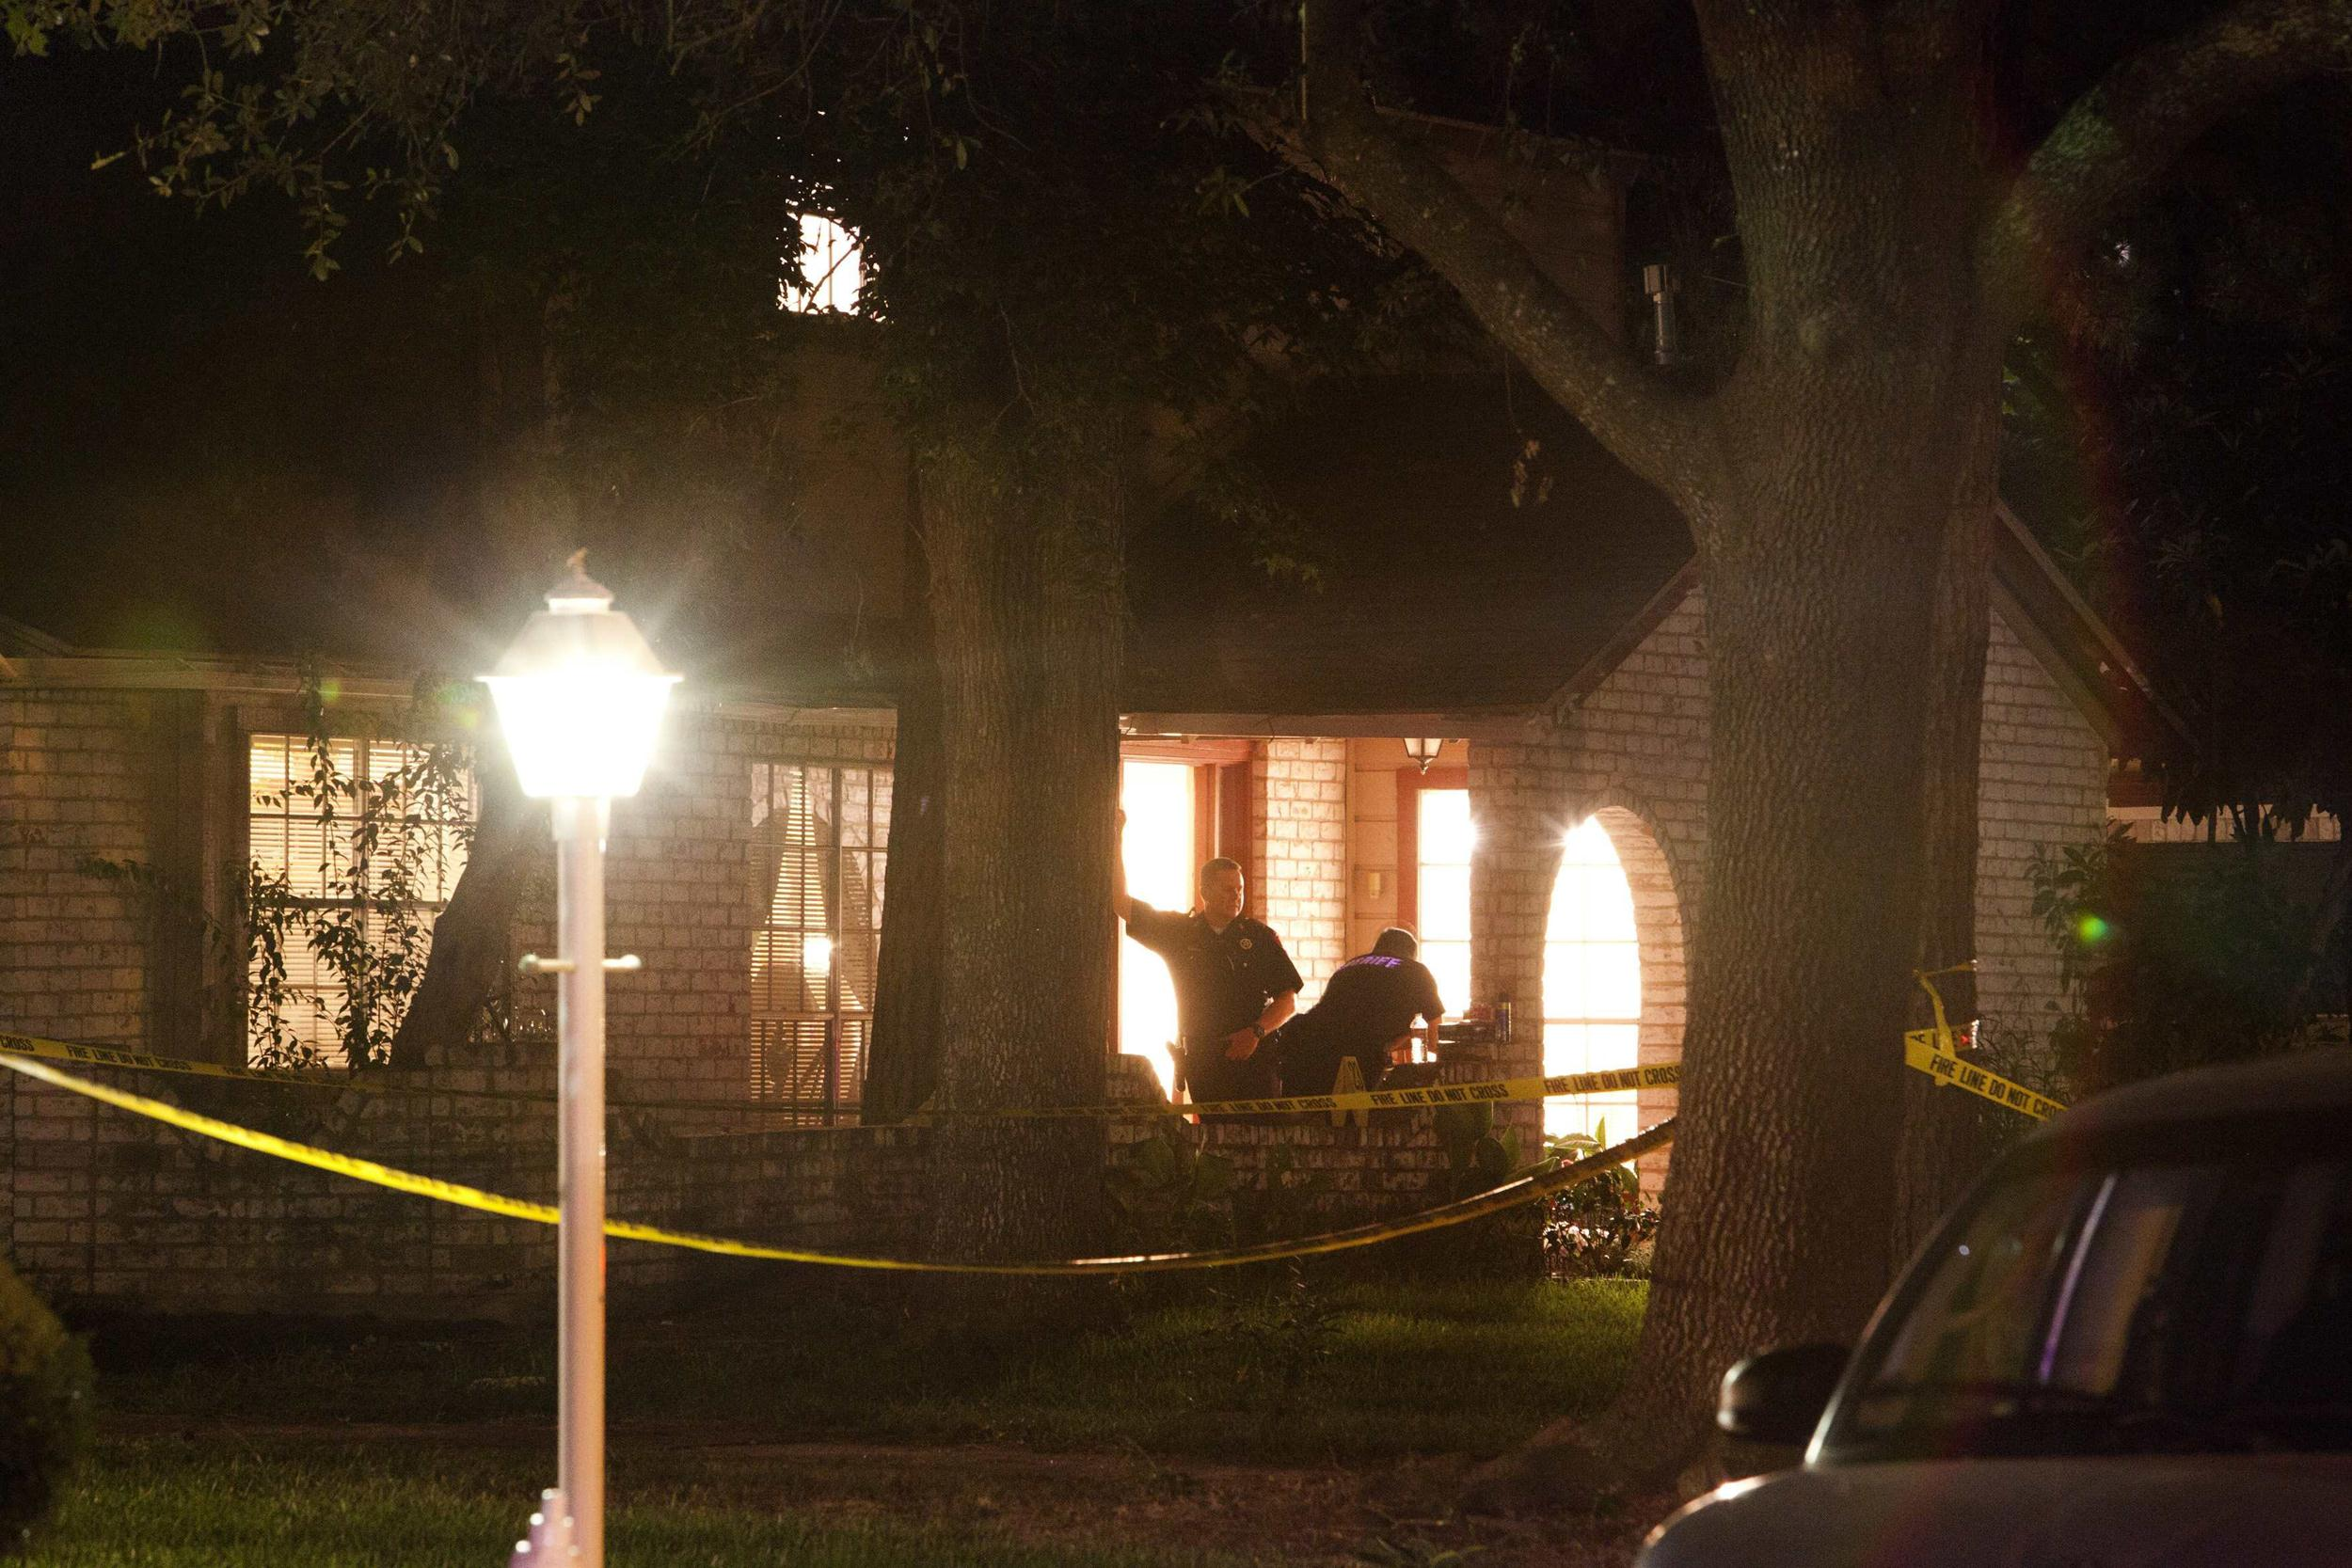 Image: Harris County Precinct 4 constables stand at the door of a home where several people were shot to death, in the Houston suburb of Spring, Texas